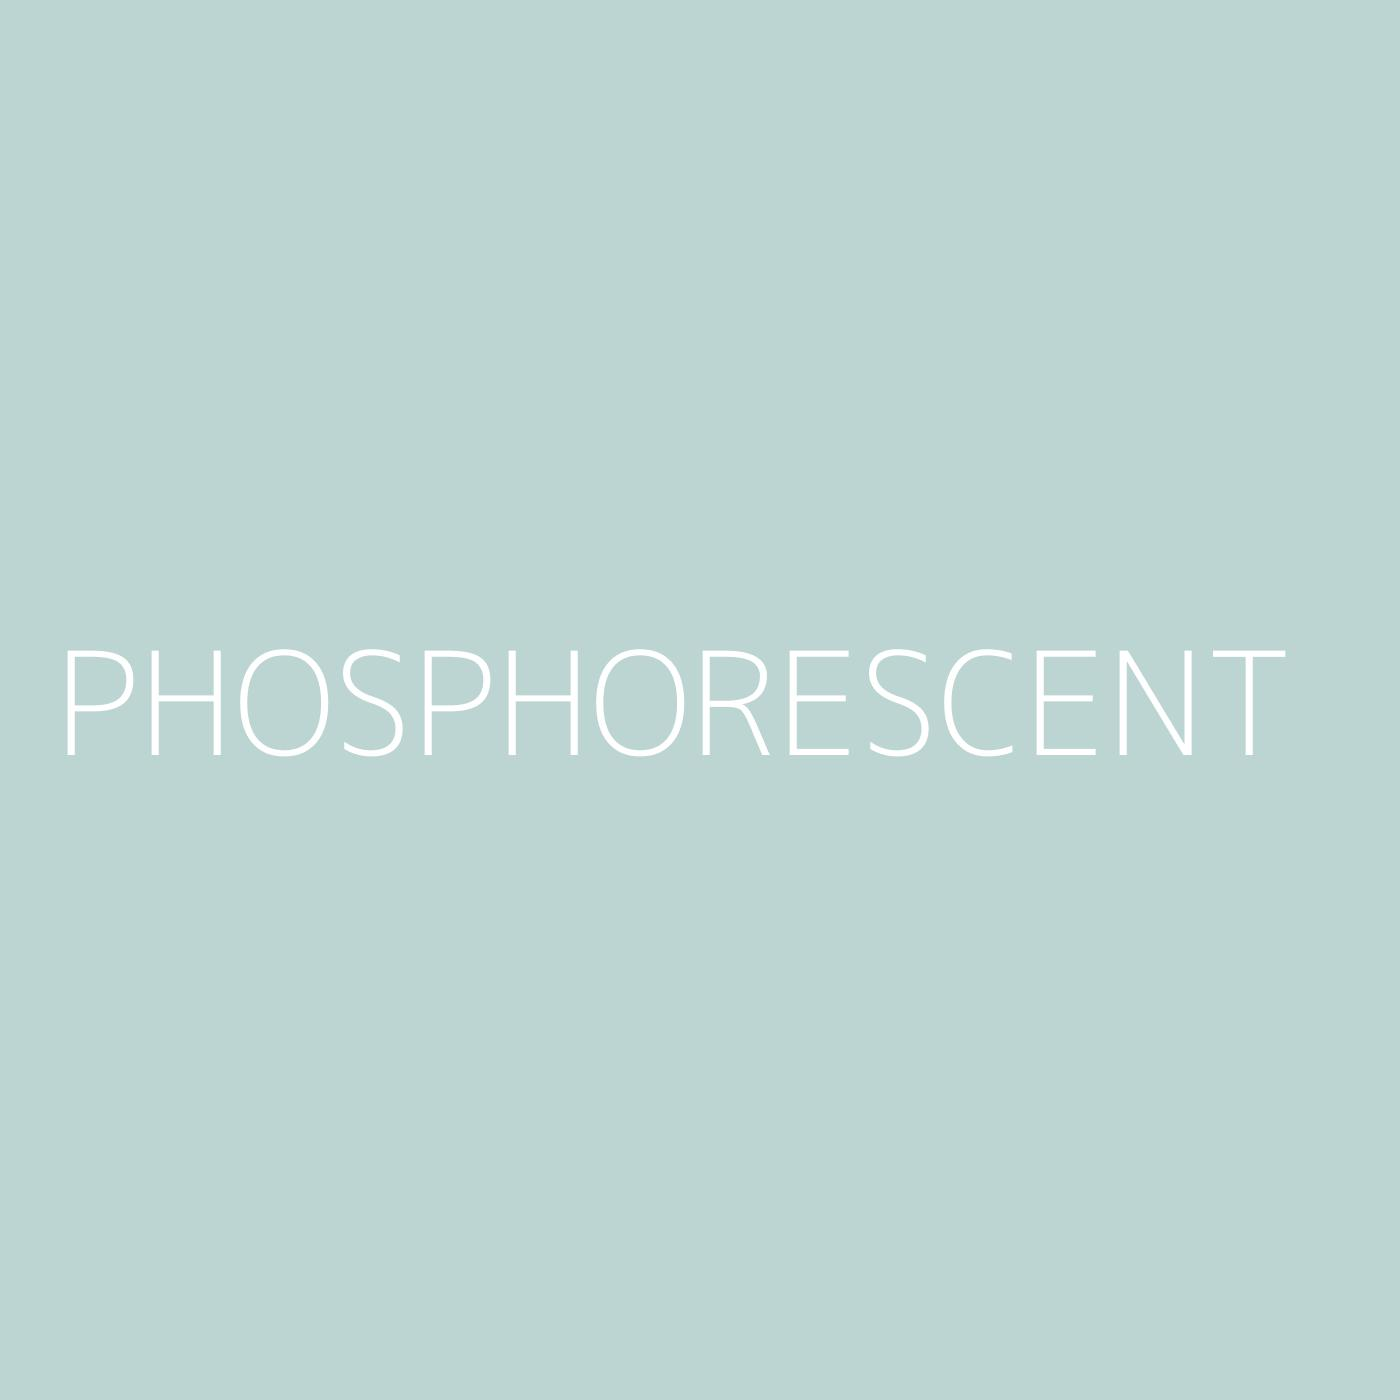 Phosphorescent Playlist Artwork